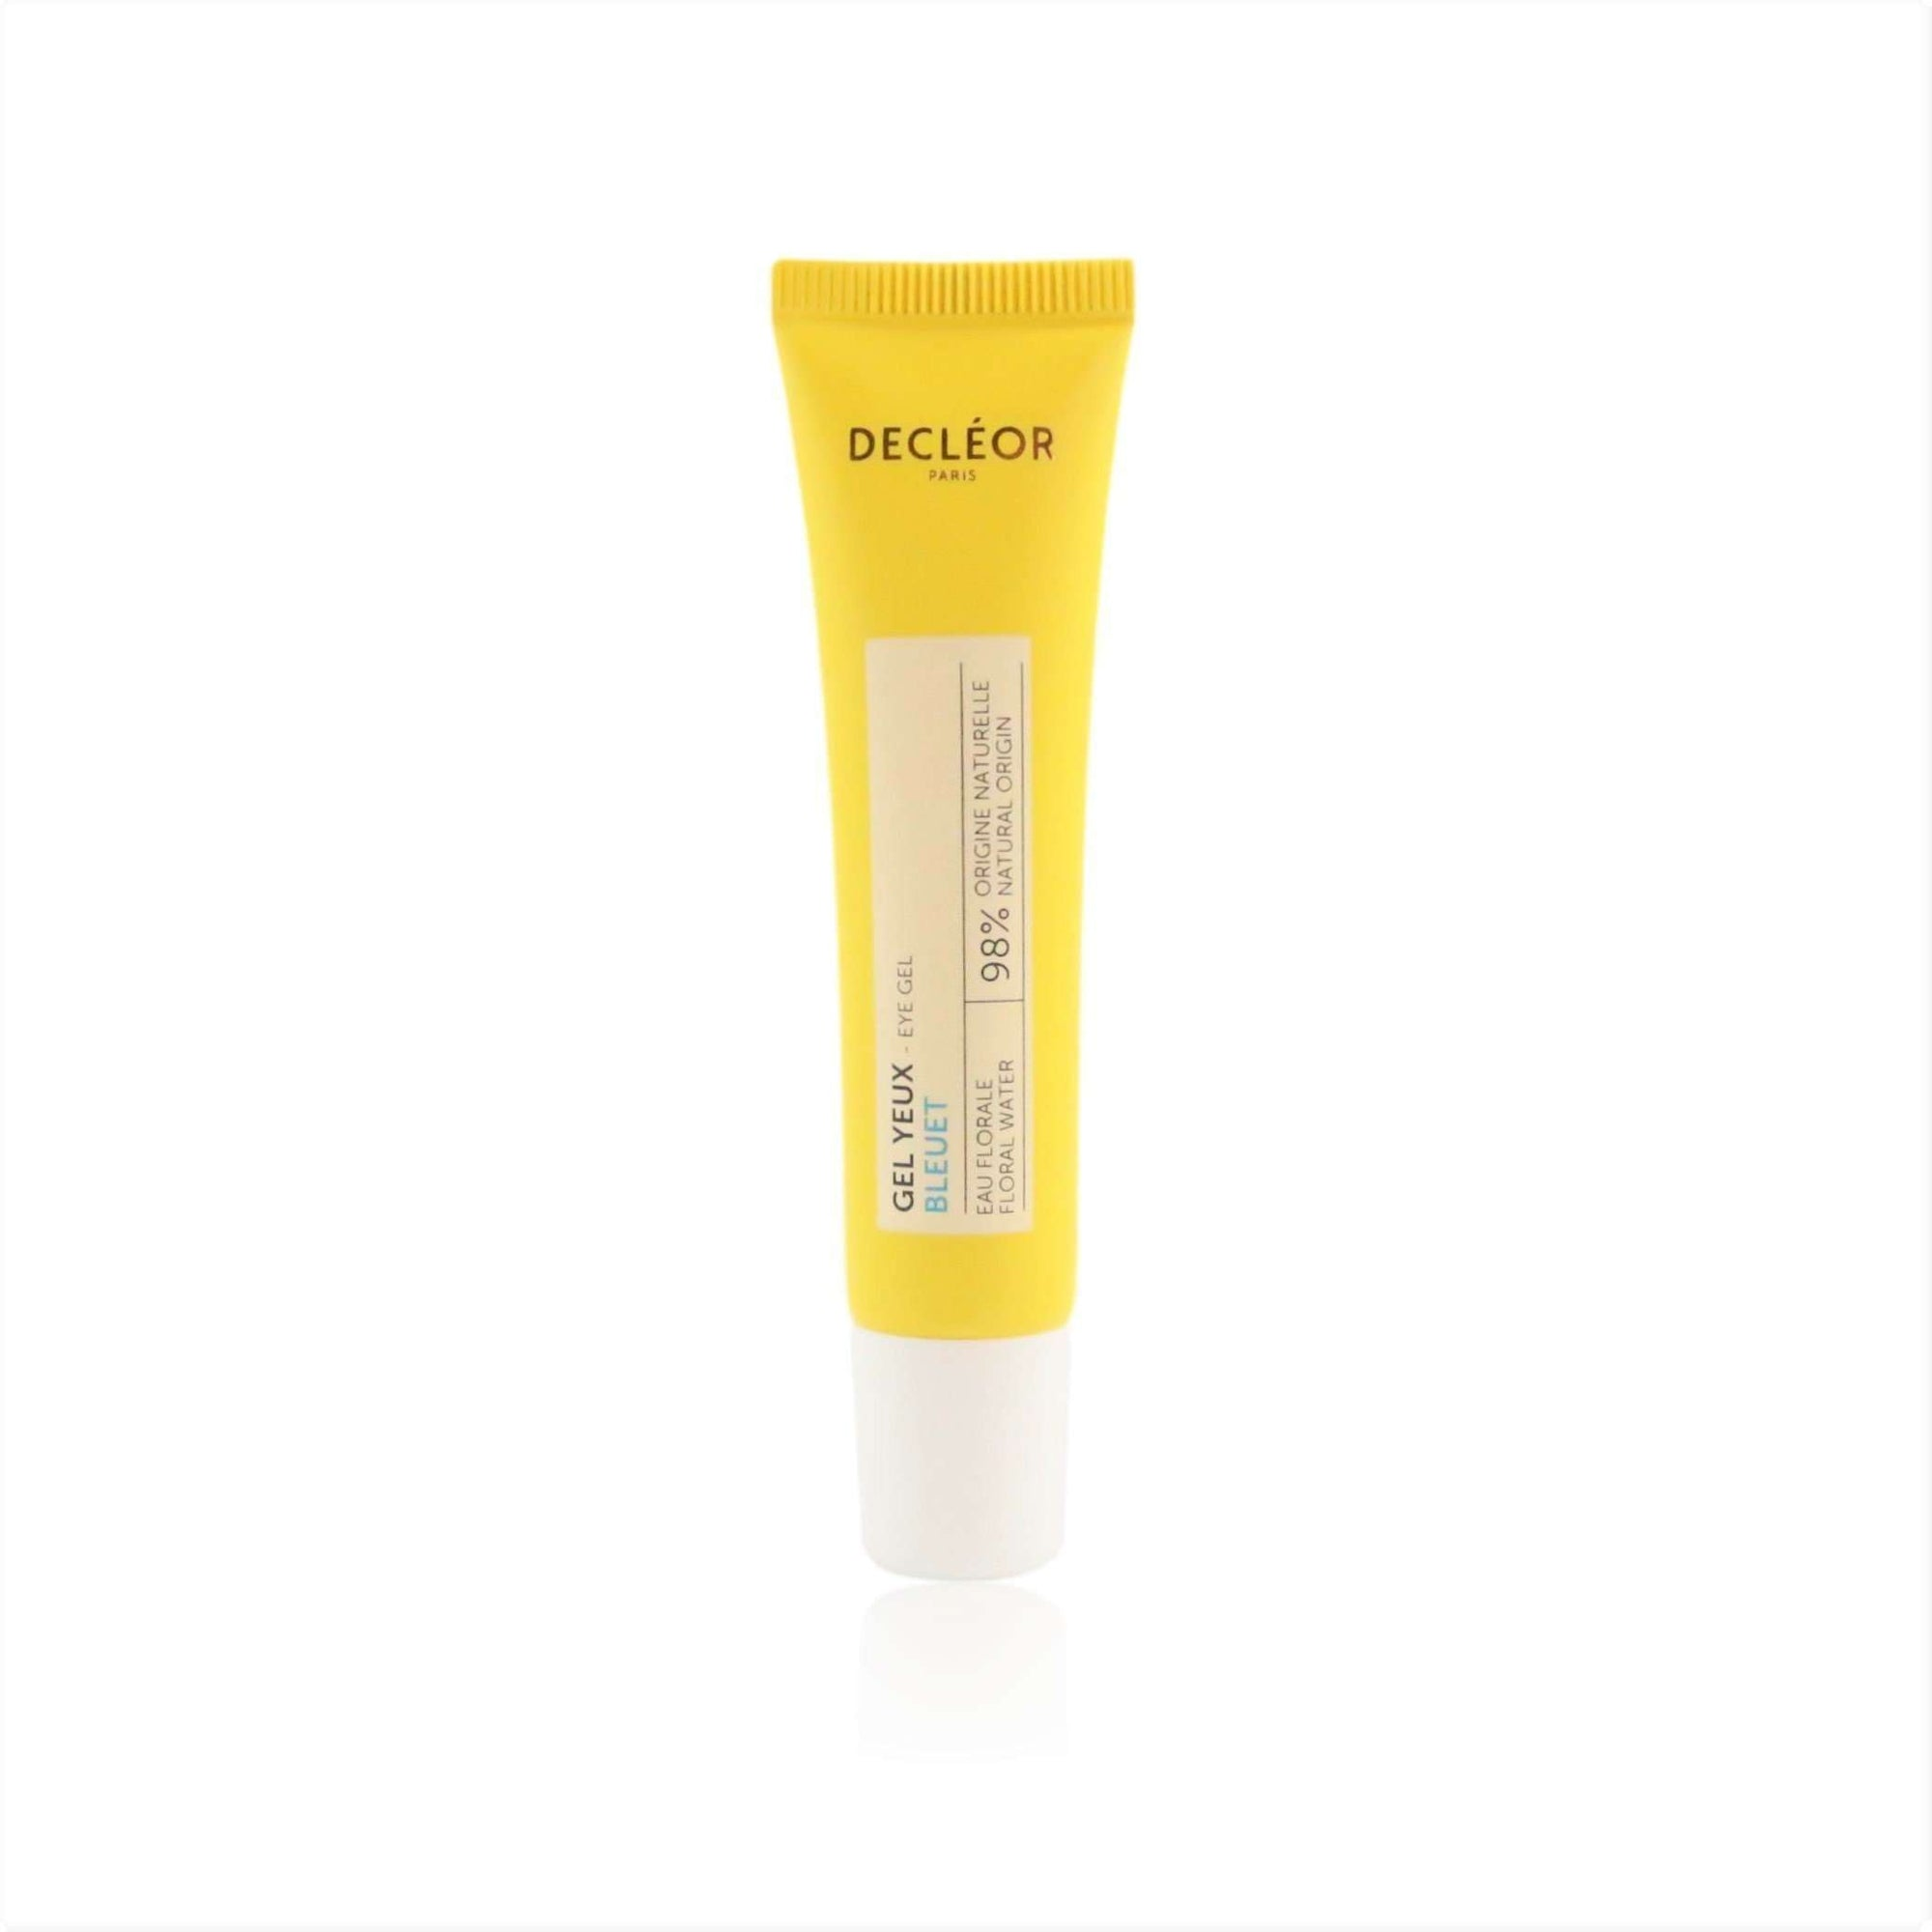 Decleor Cornflower Hydrating Eye Gel